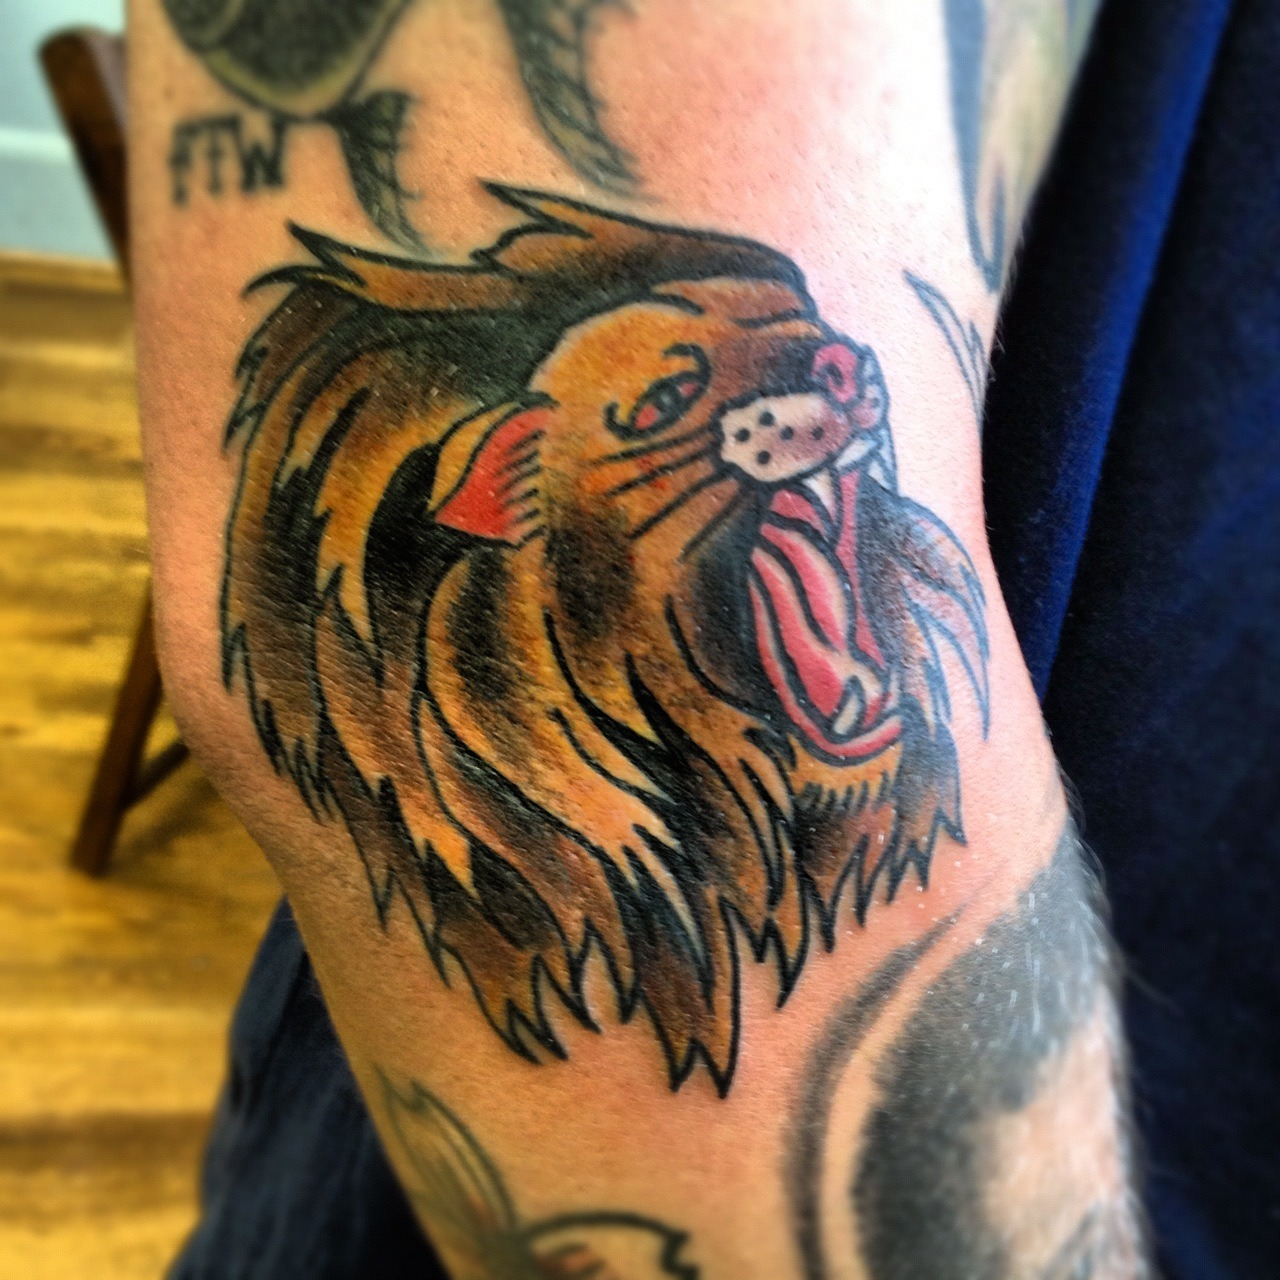 Old School Tattoos Ideas And Designs